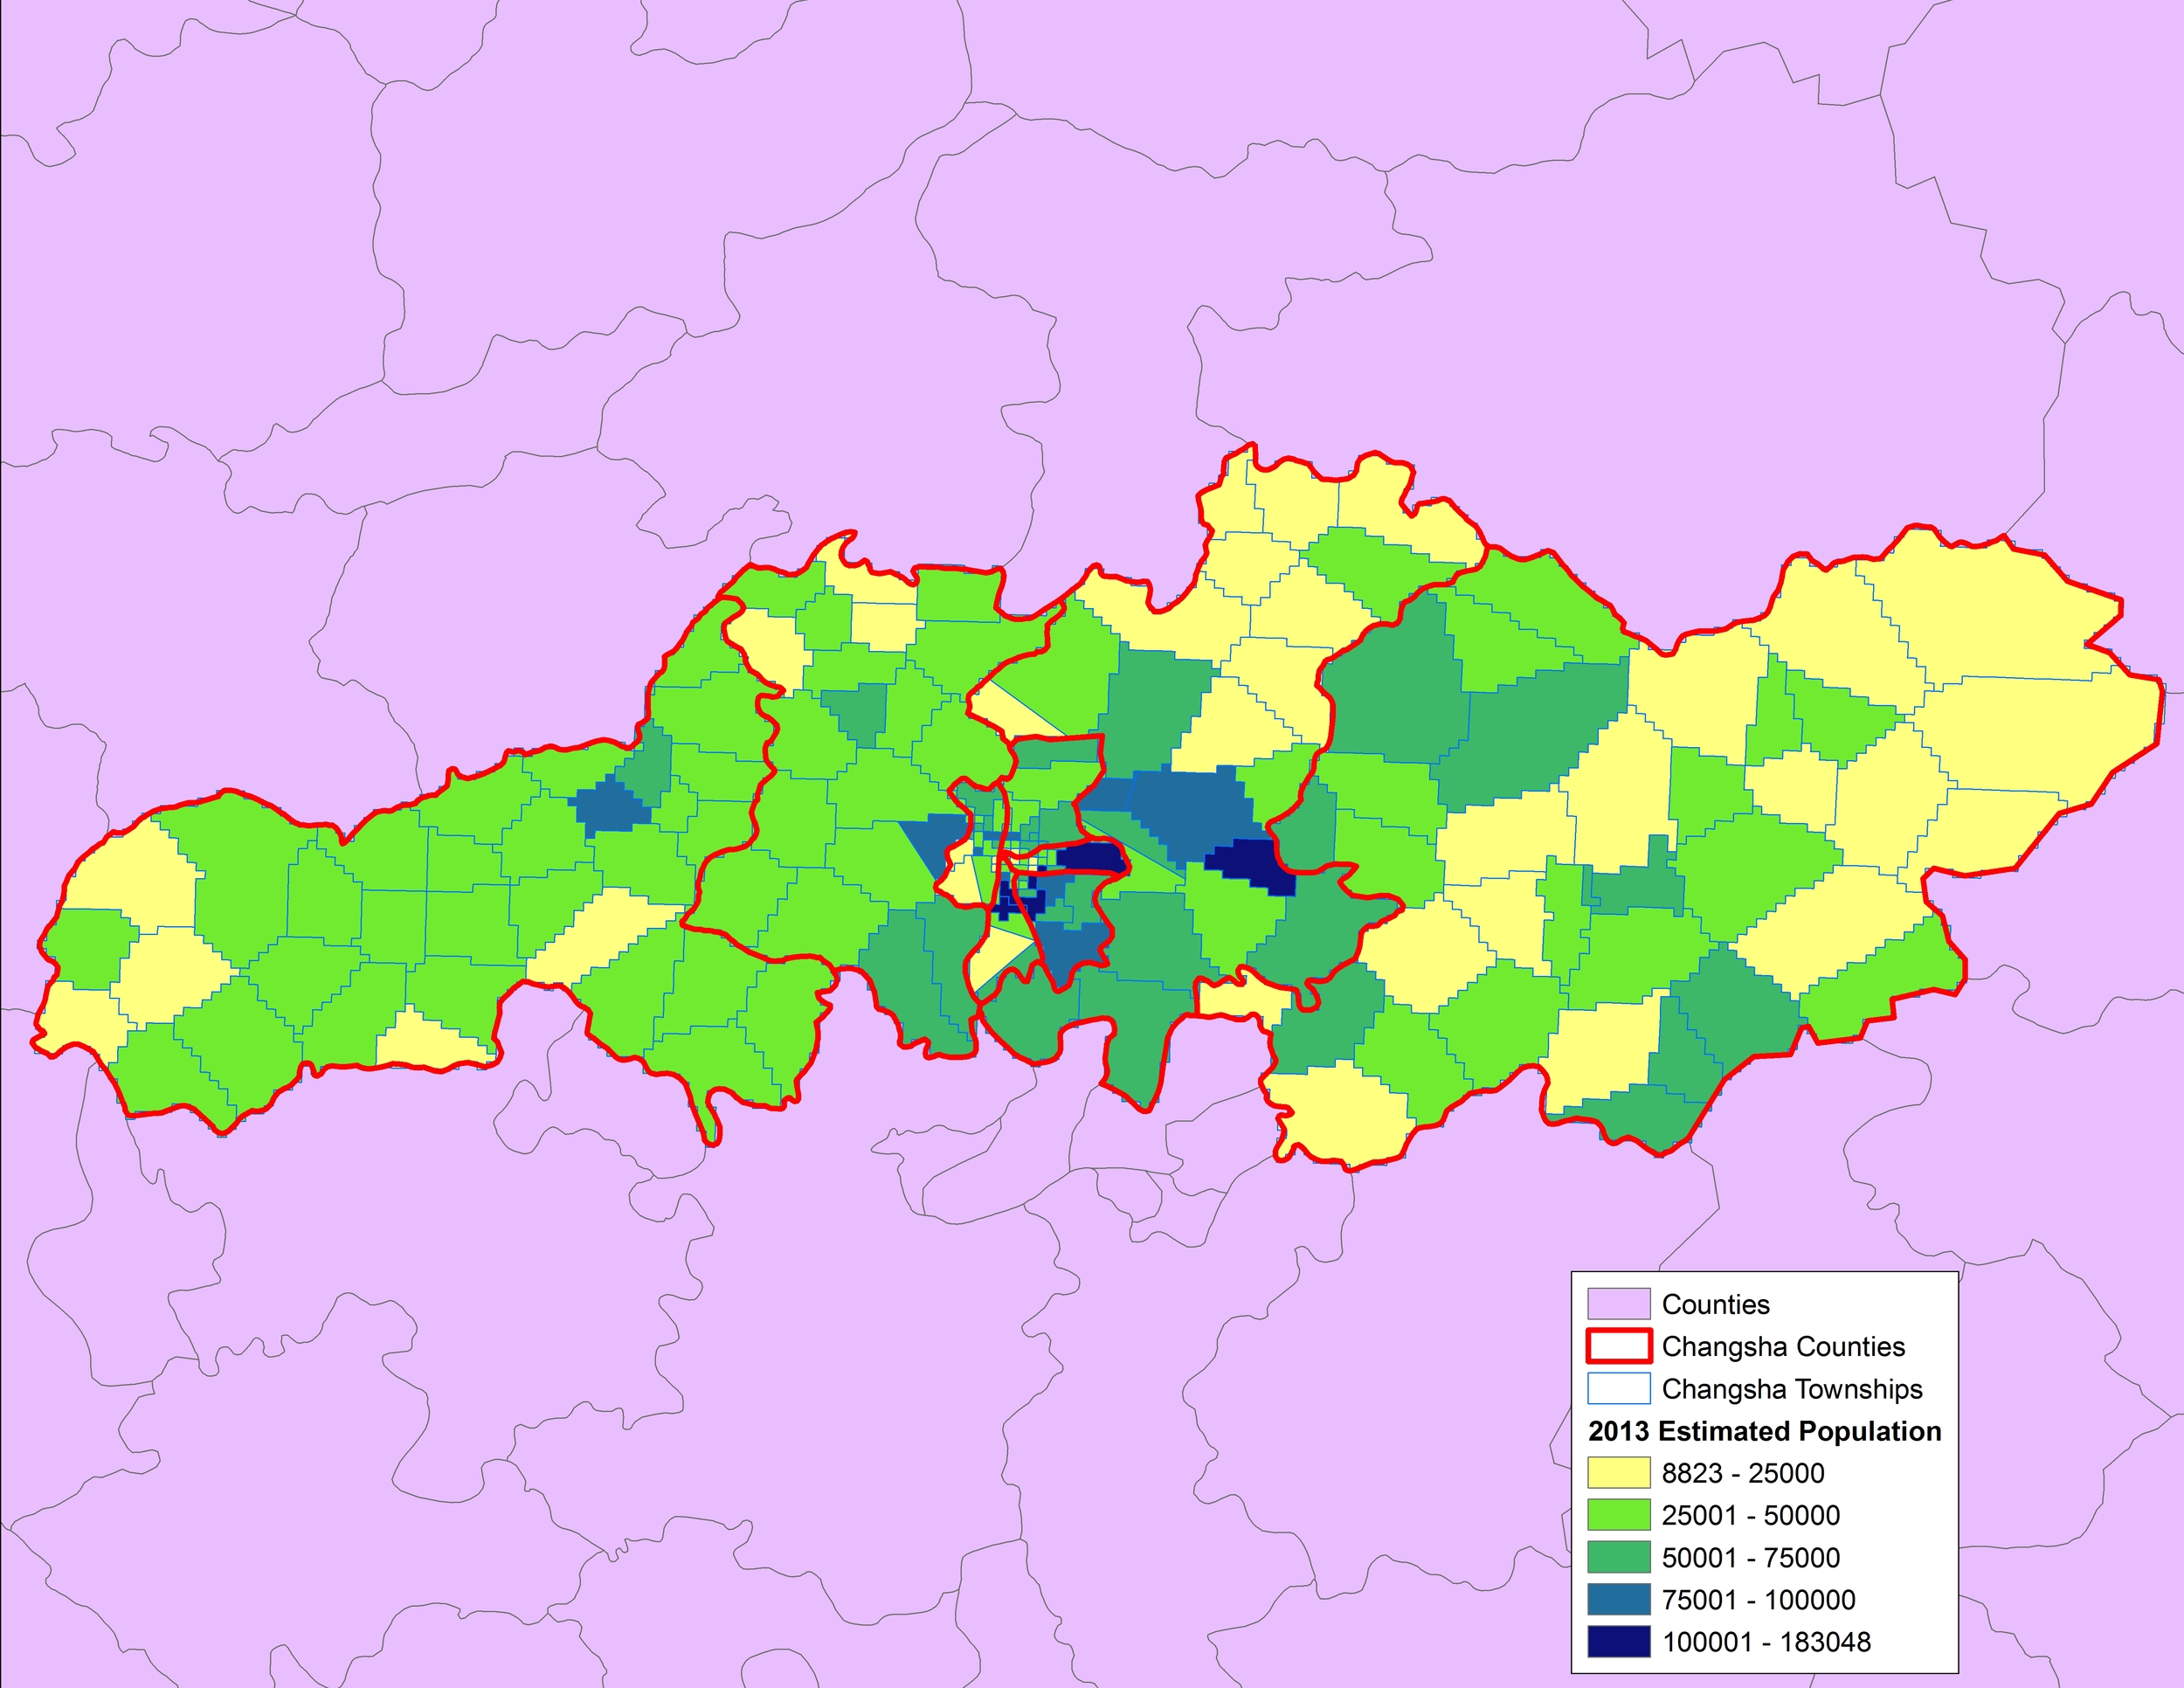 2013 Estimated Population by Township